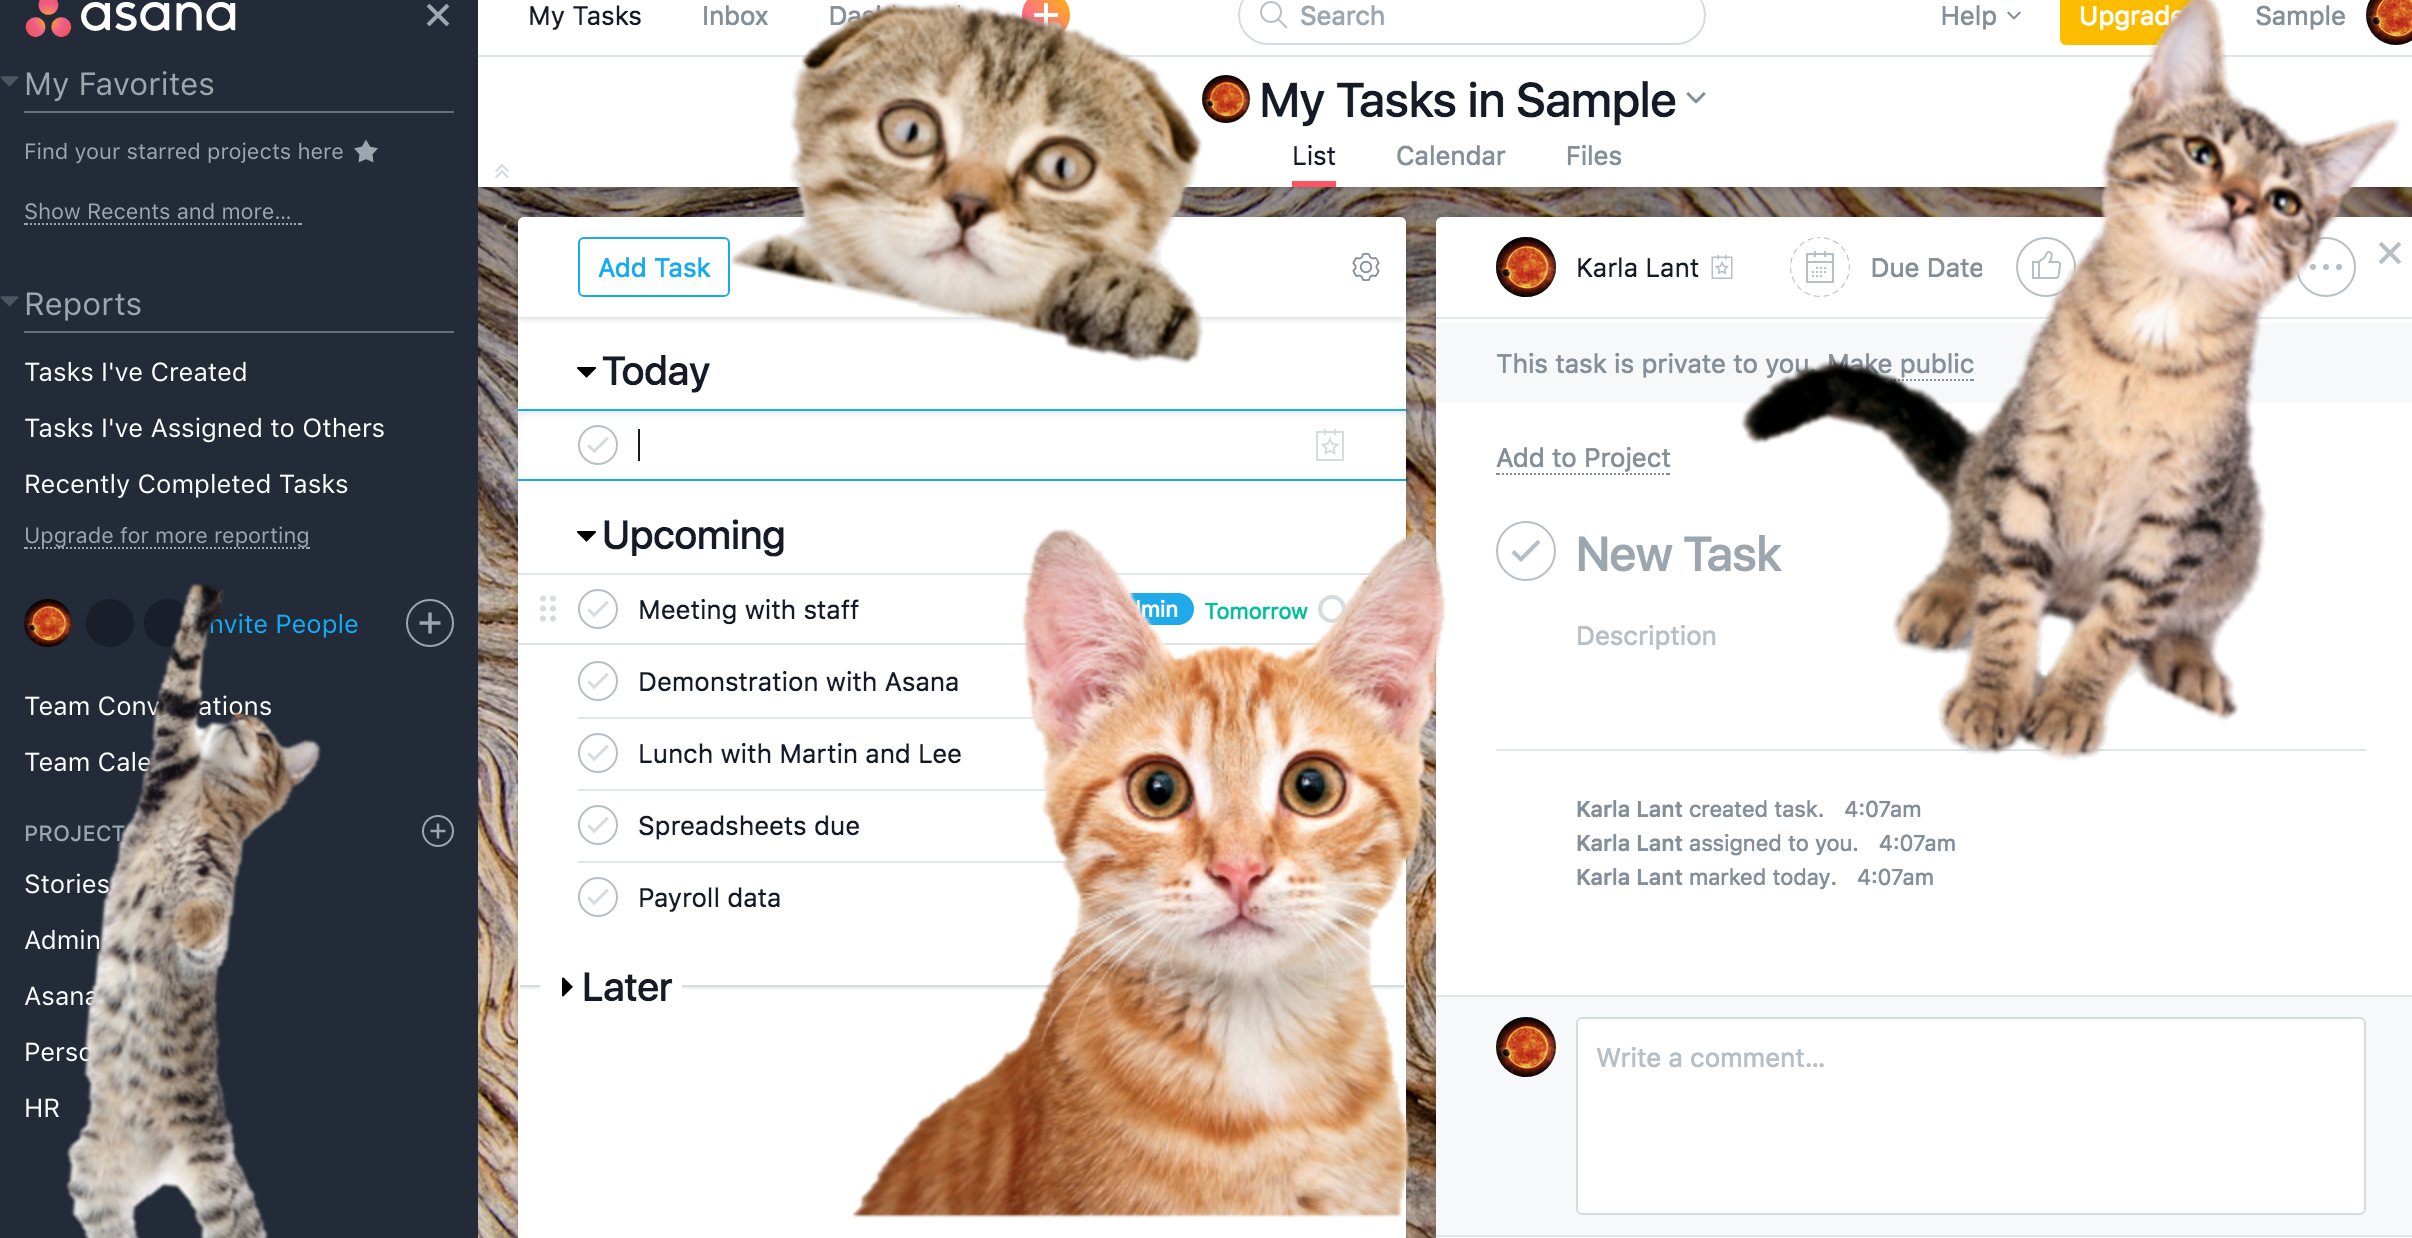 Asana experimental features